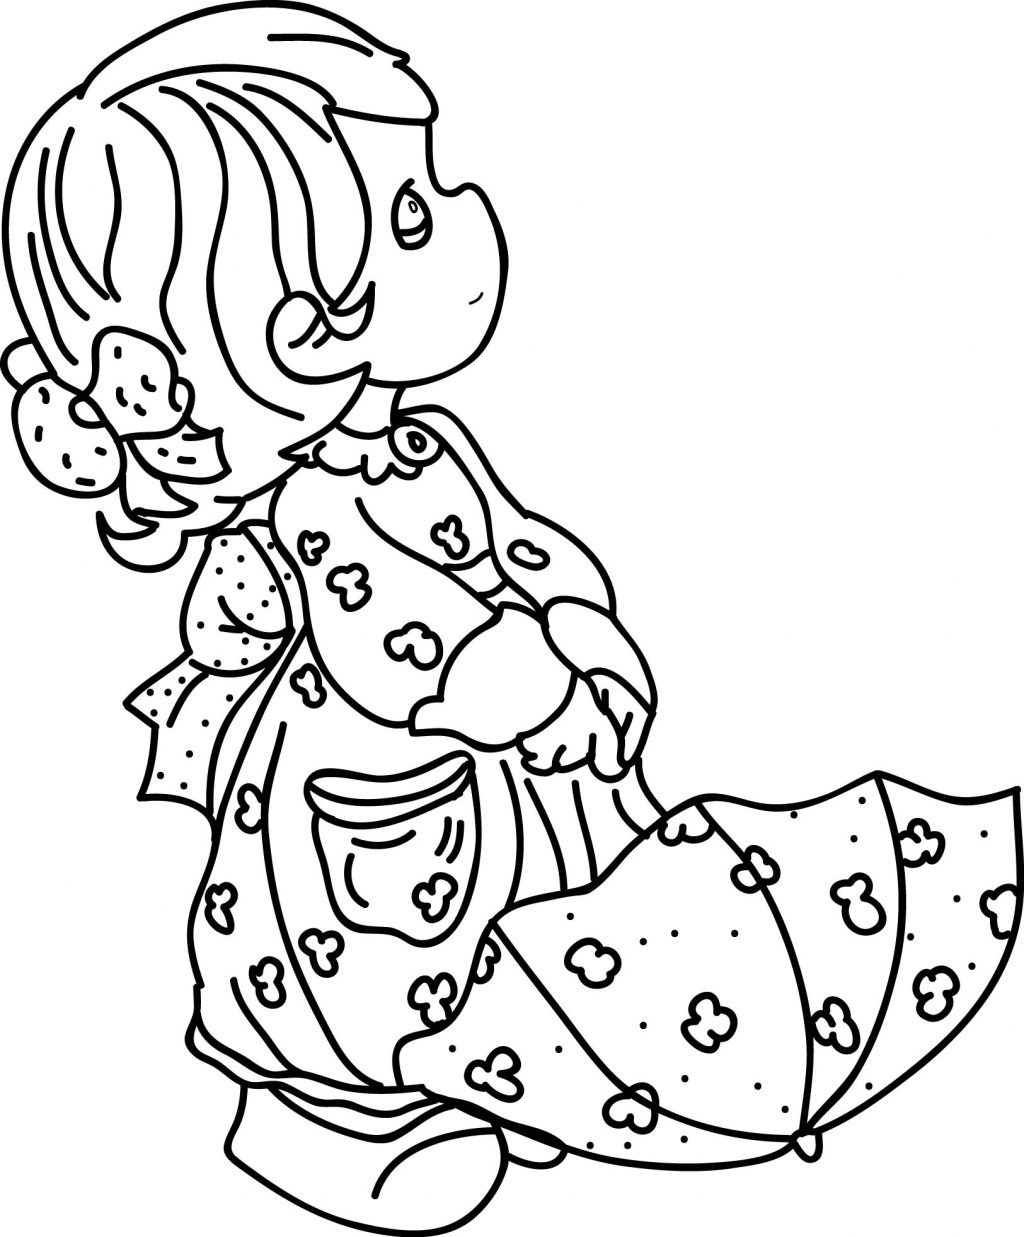 coloring pages of a little girl cute little girl coloring pages at getcoloringscom free little girl coloring of a pages